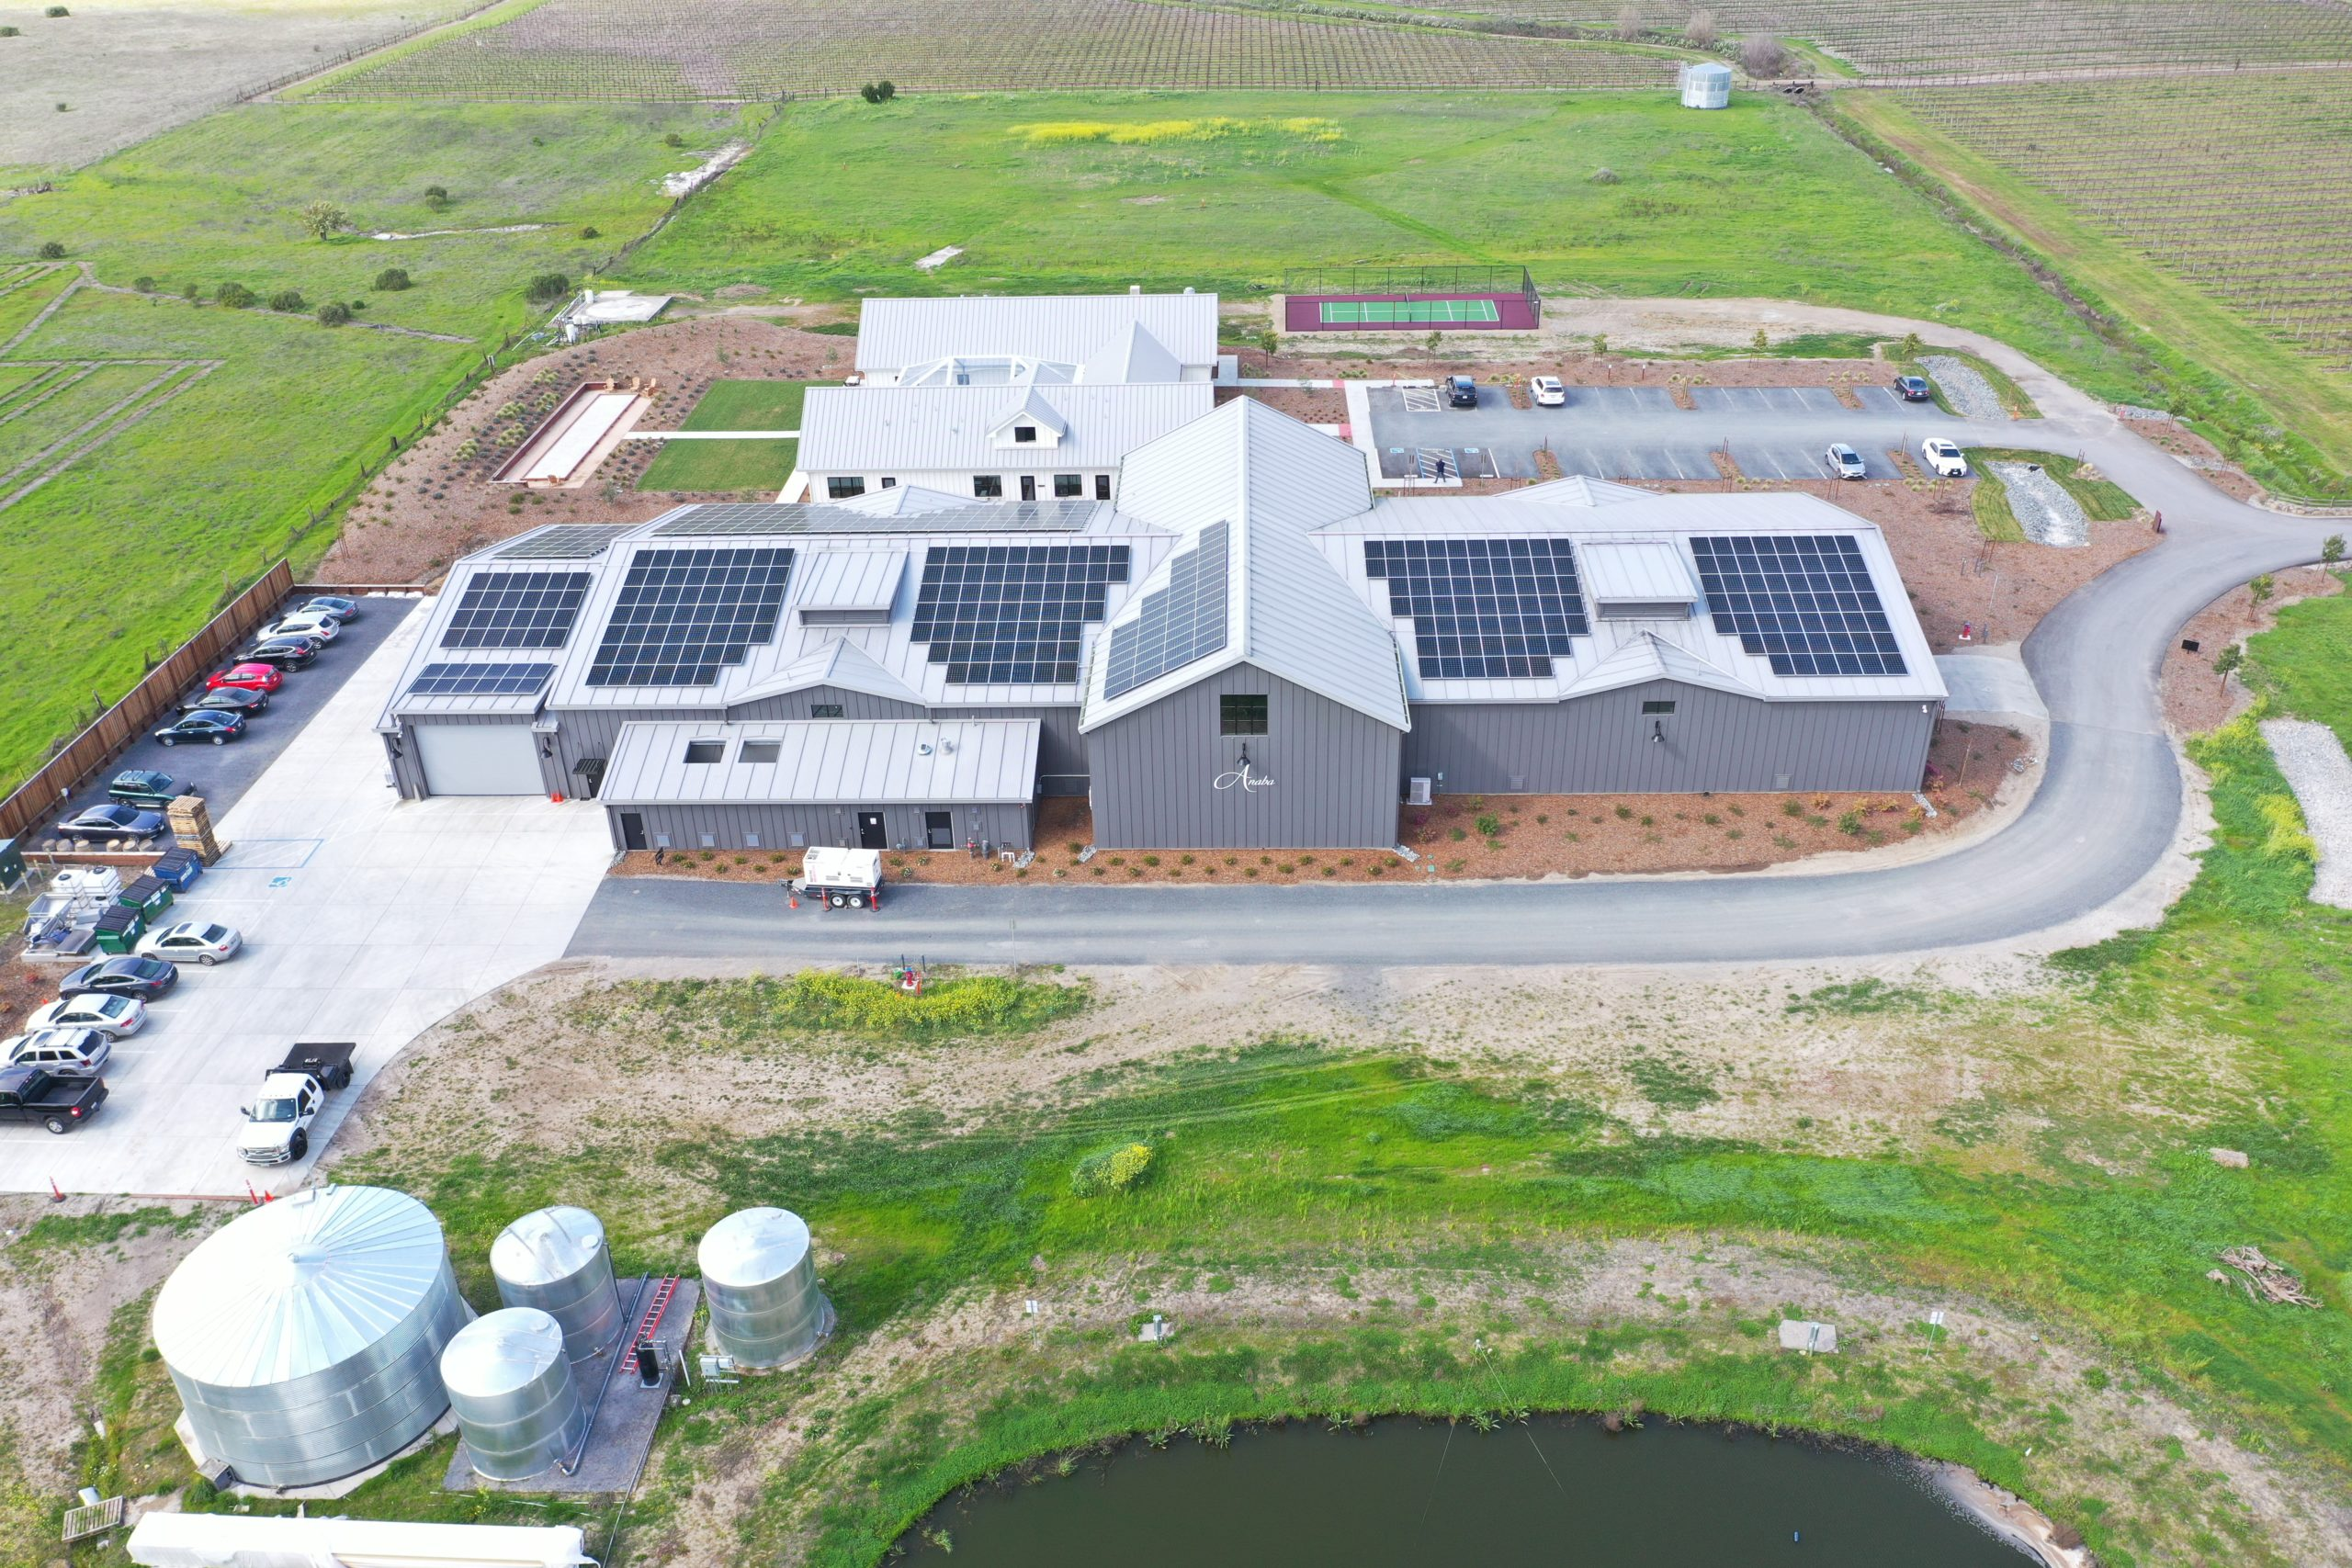 Anaba Wines Surges Forward On Path Towards Sustainability With Solarcraft Solar Power Installation photo